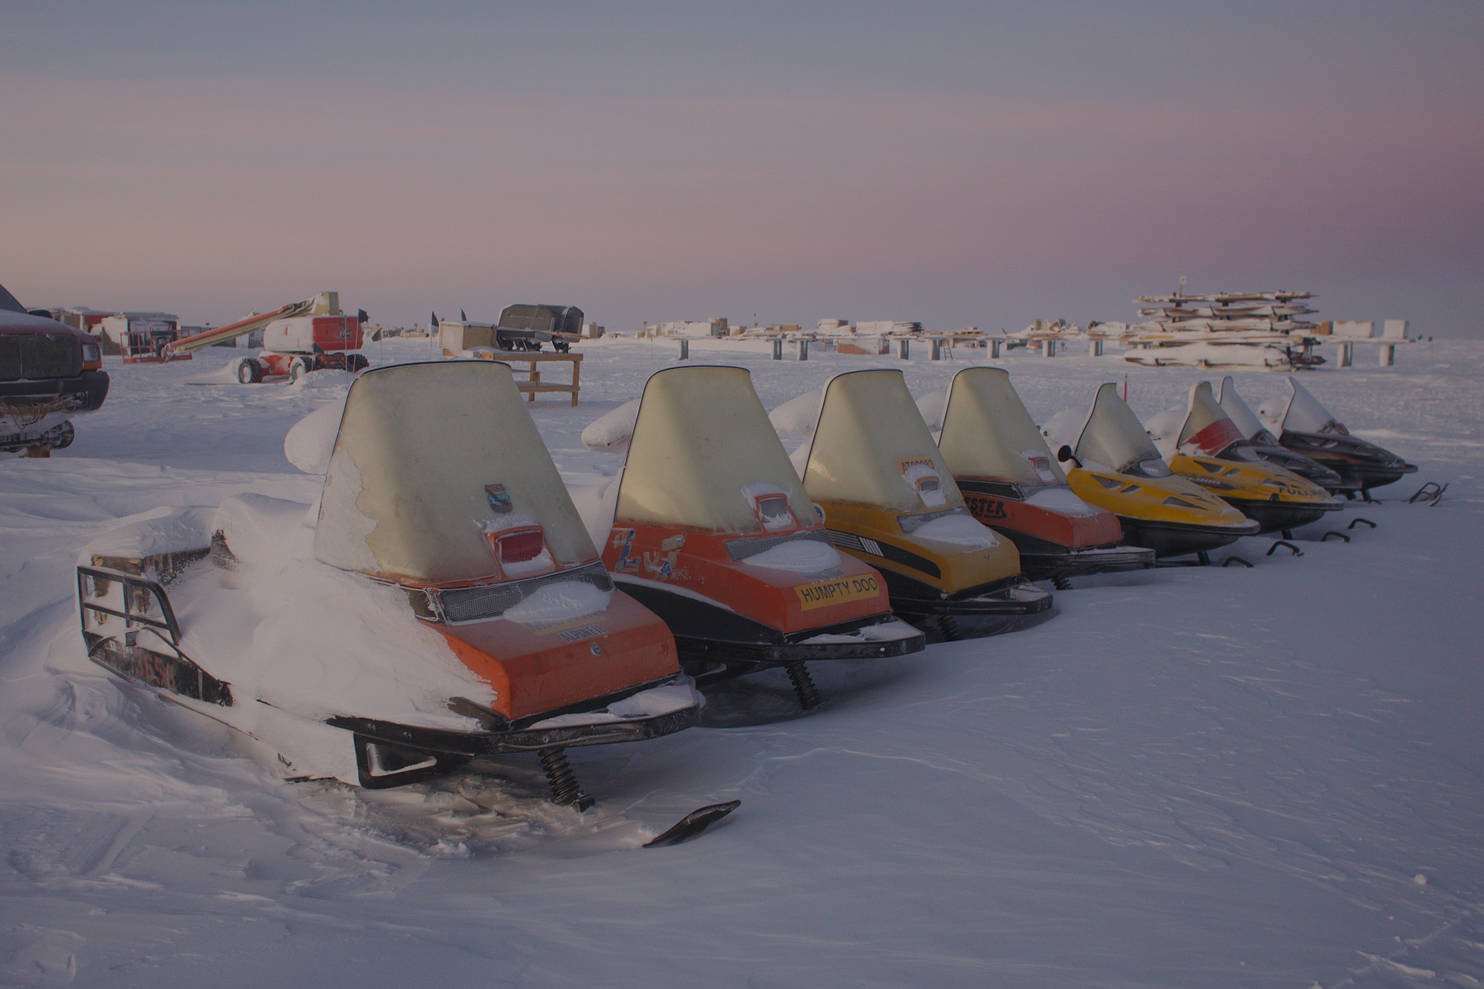 A row of snowmobiles.